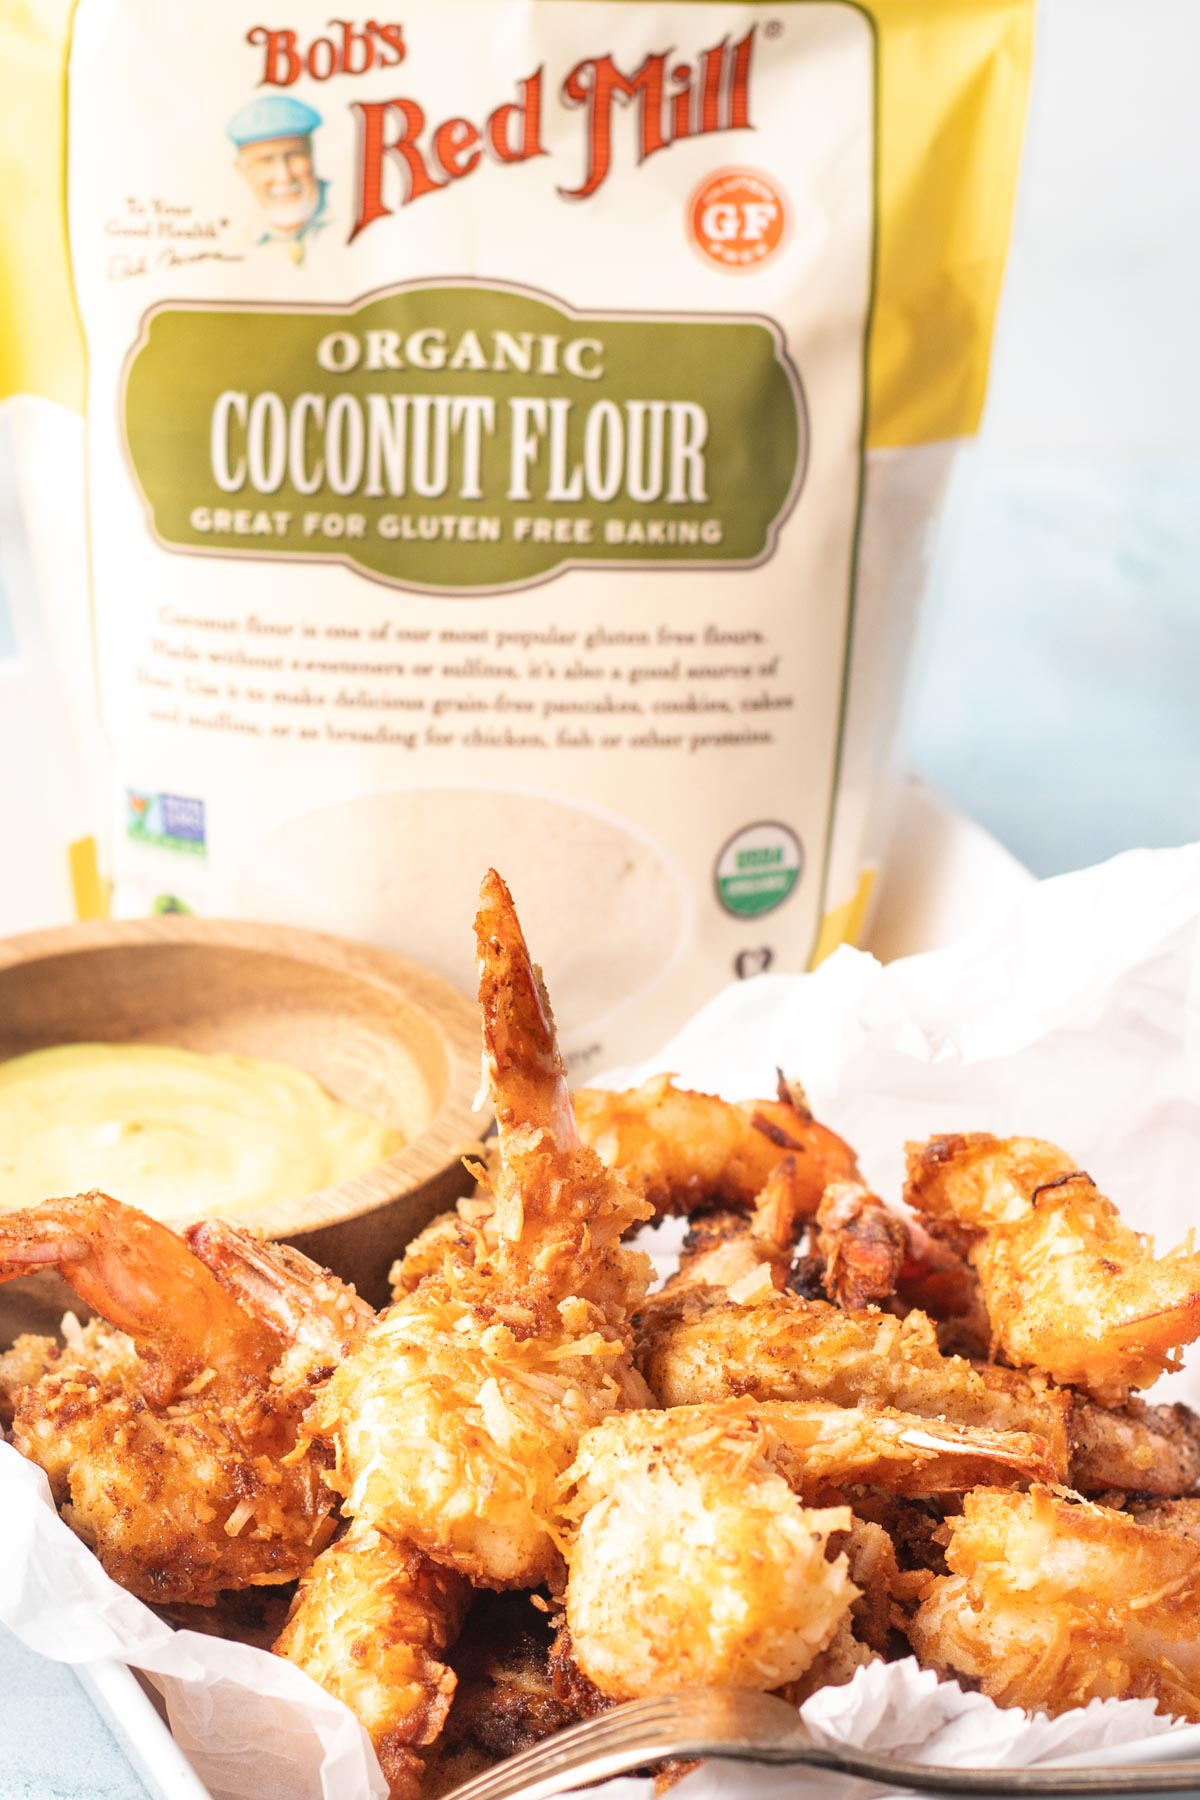 Keto Coconut Shrimp stacked in a serving tray with parchment paper, a wooden bowl of dipping sauce is in the background along with a package of Bob's Red Mill Coconut Flour.